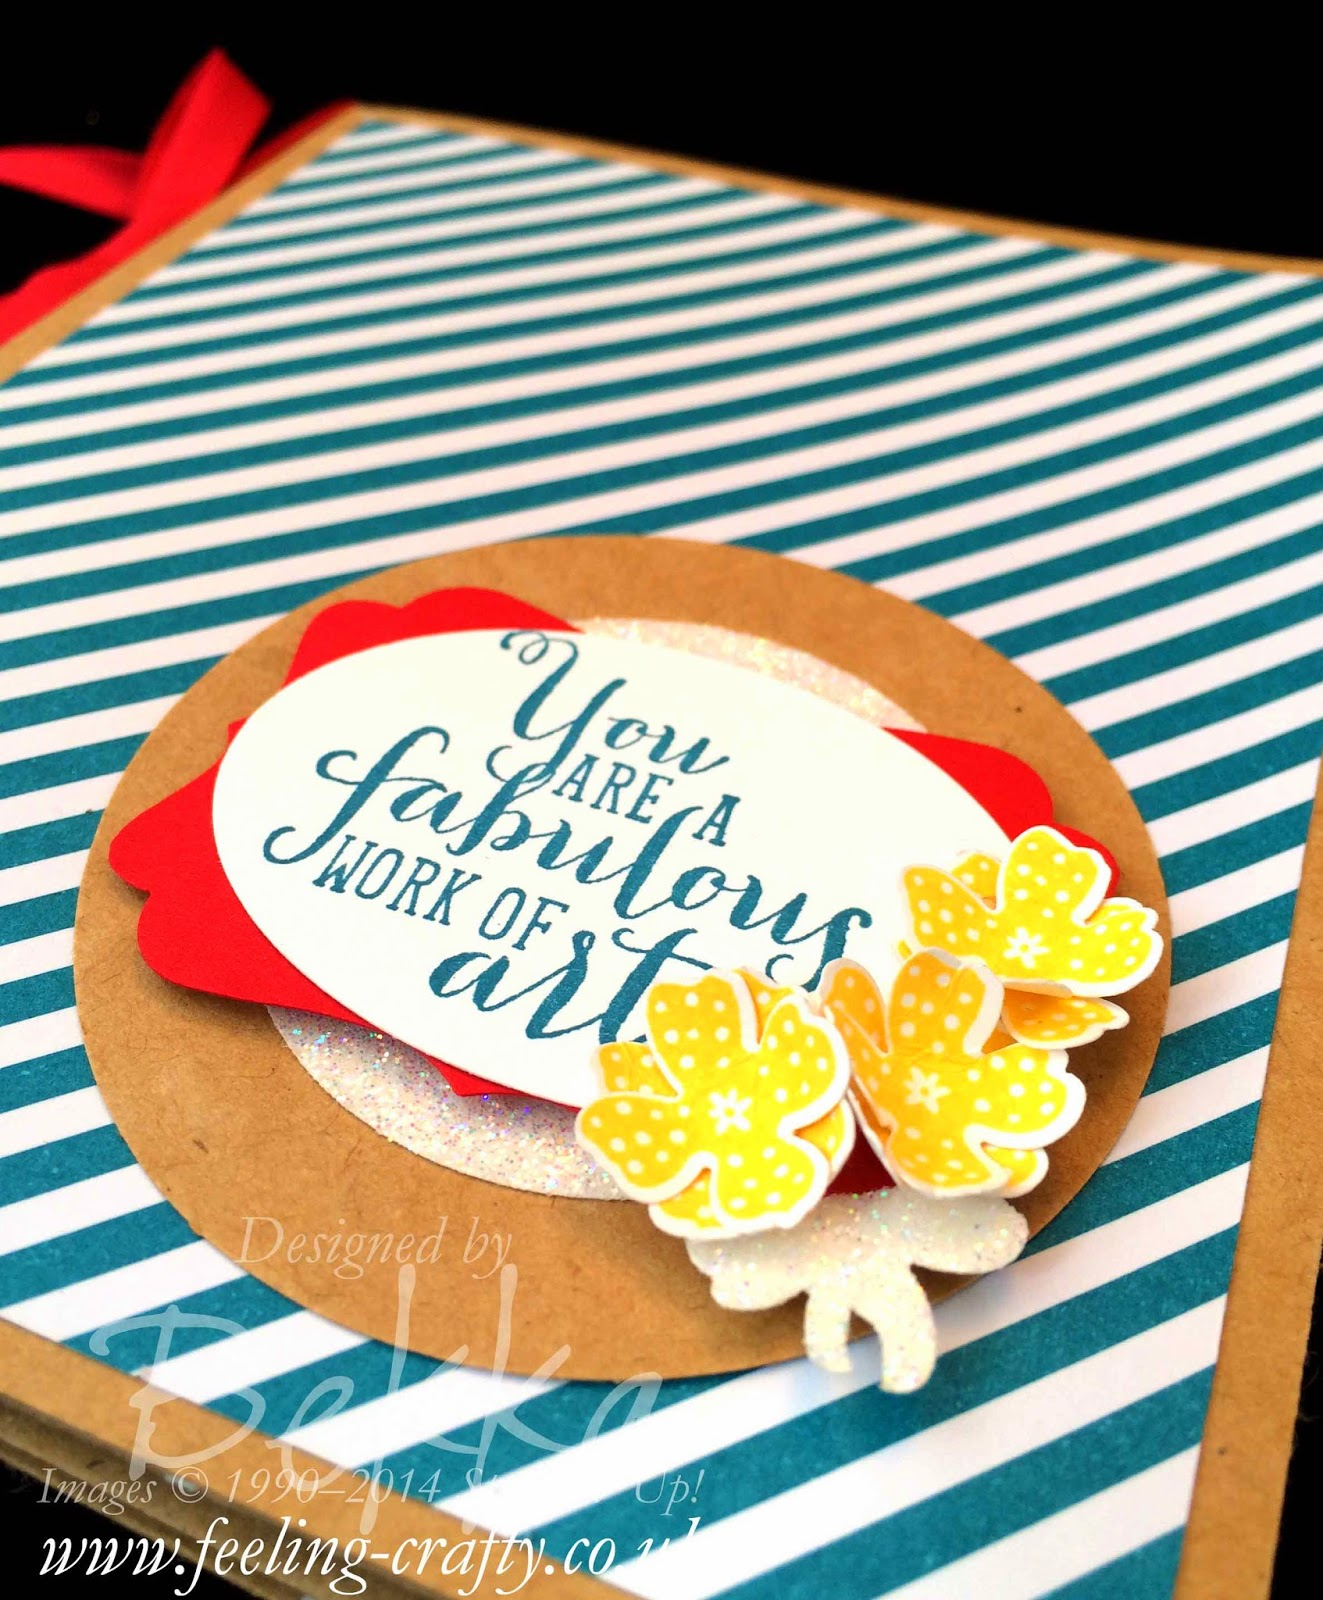 How to make a Bow from the Flower in the Itty Bitty Accents Punch - check out this blog for lots of cute ideas